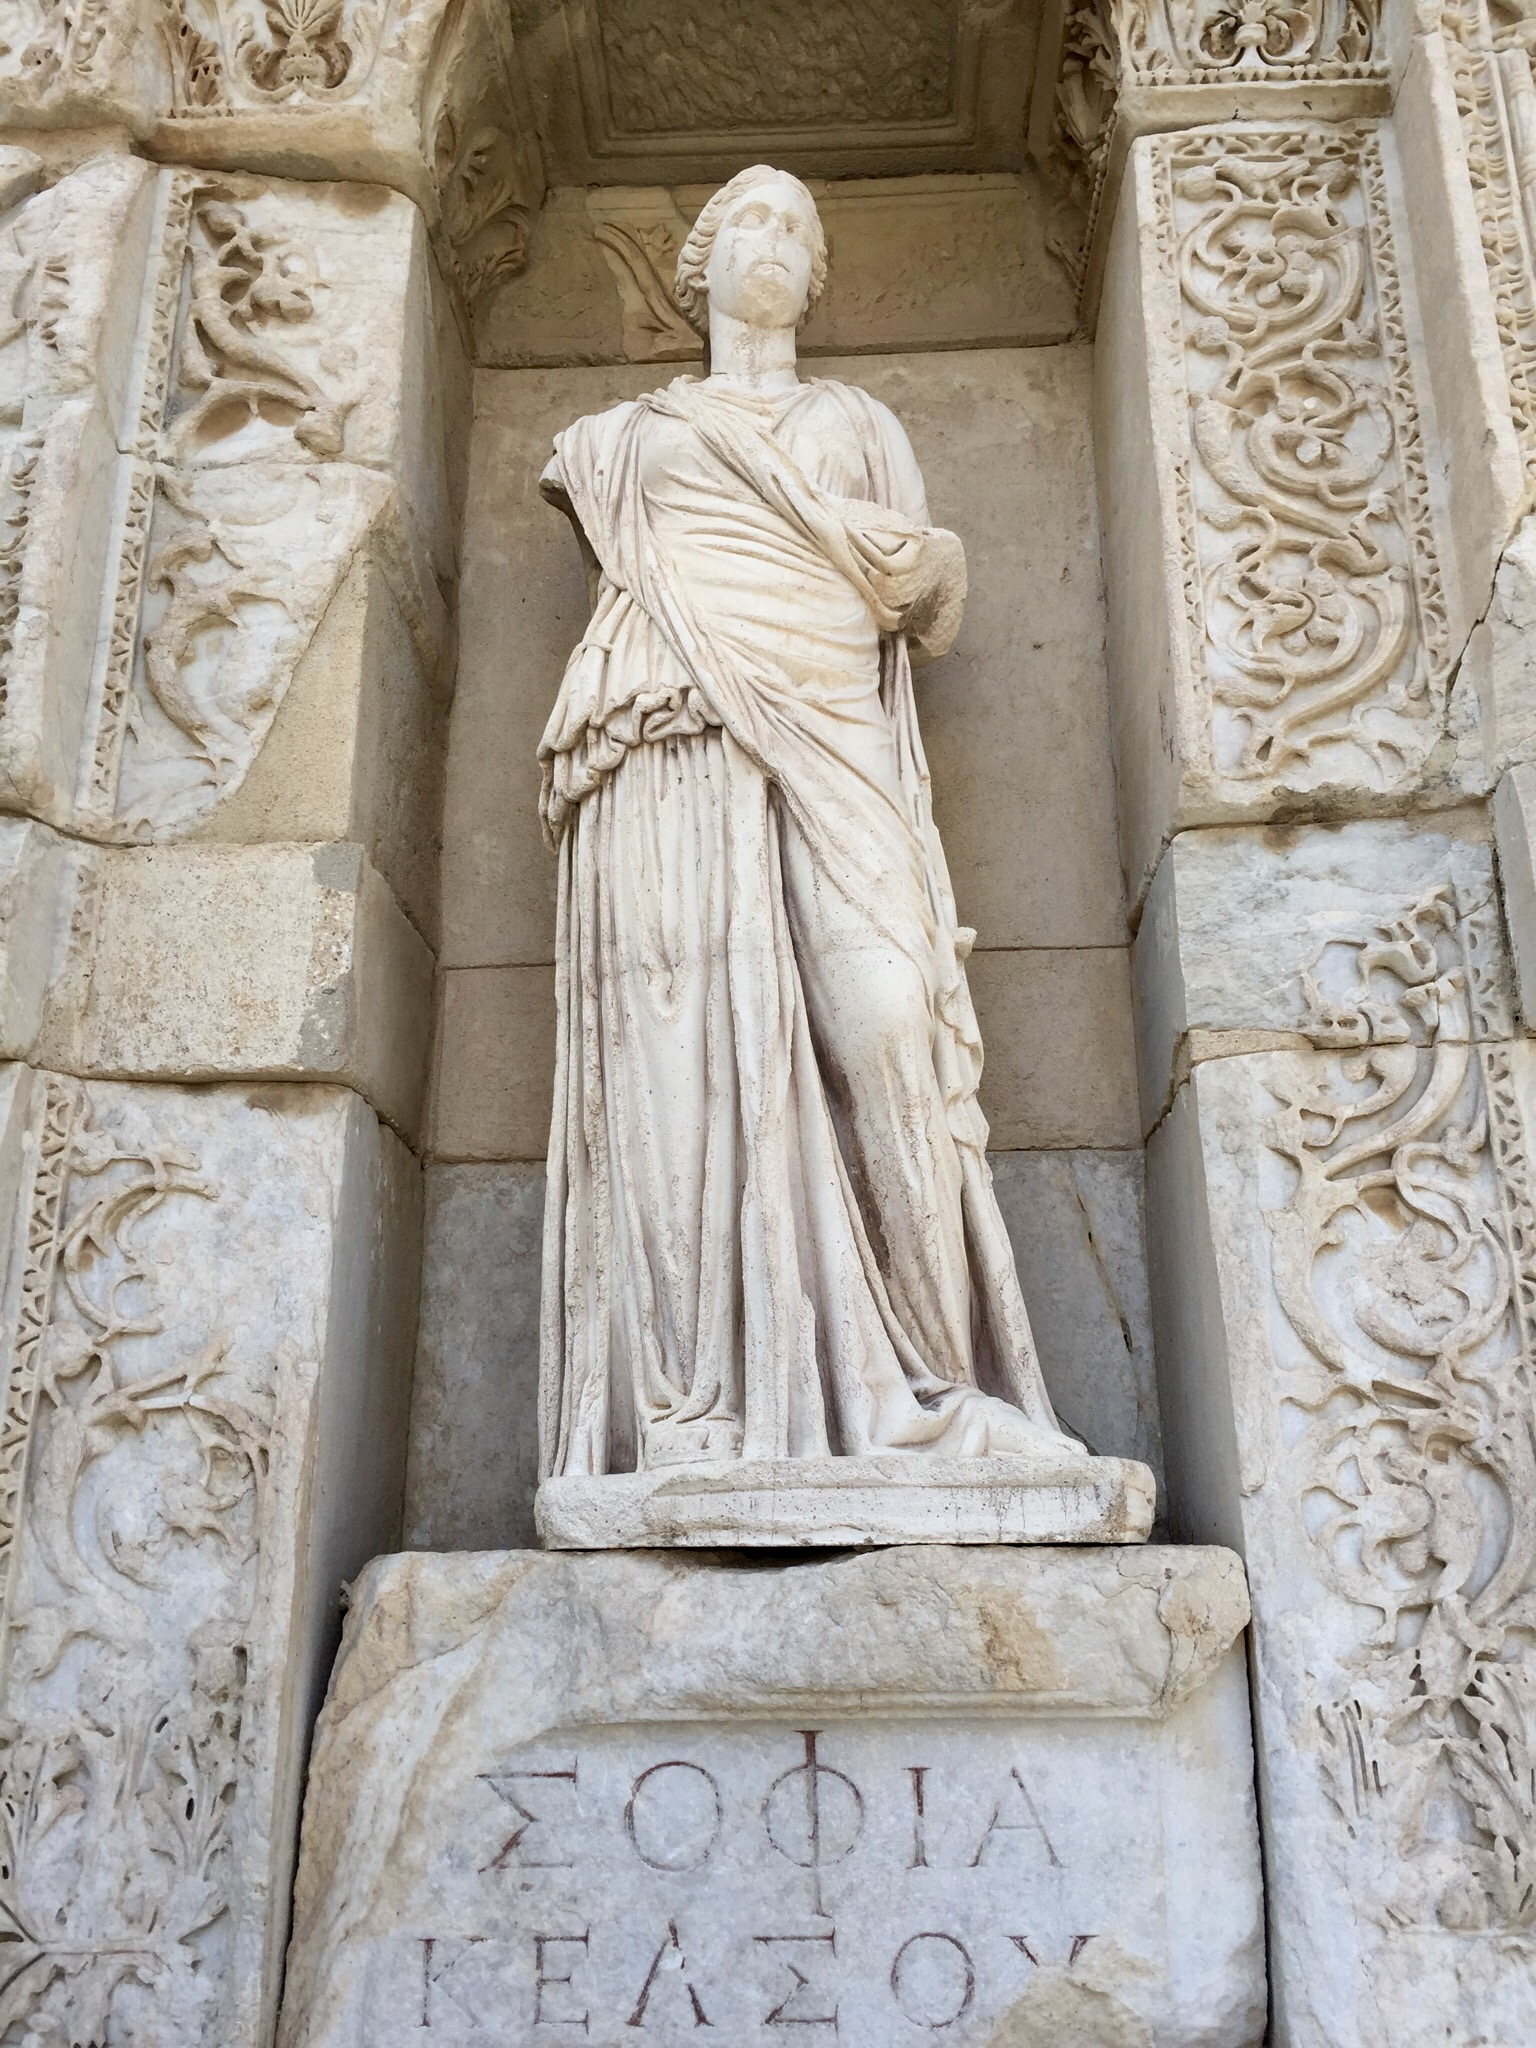 aristotle phronesis Phronesis definition, wisdom in determining ends and the means of attaining them see more.